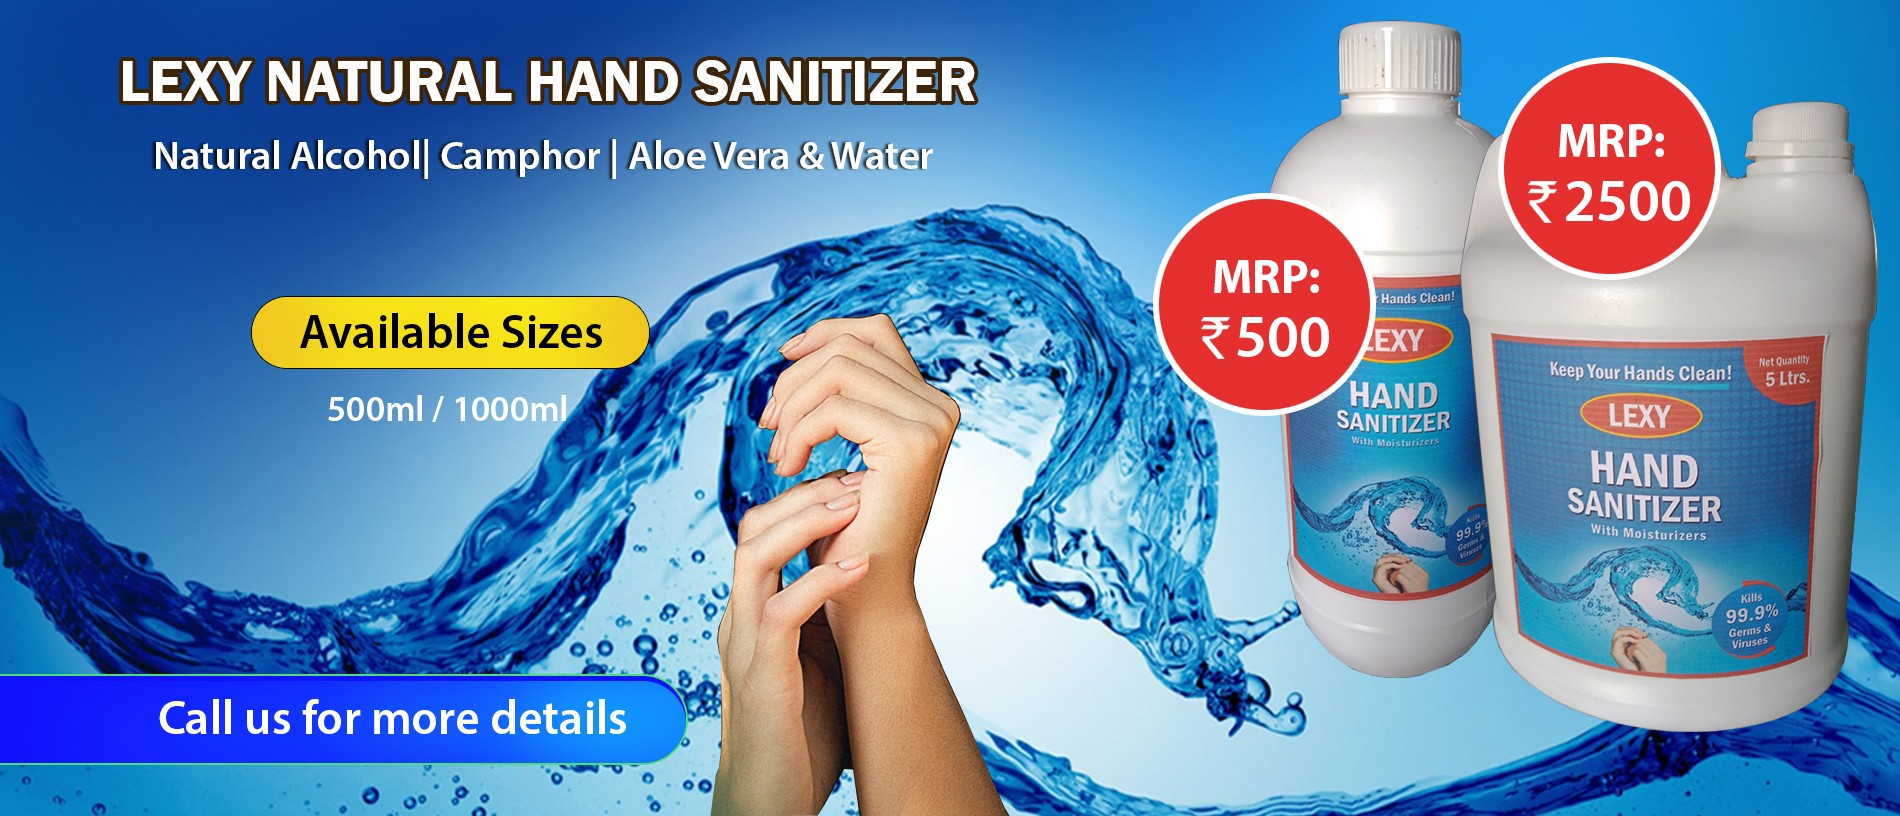 Lexy Natural Hand Sanitizer